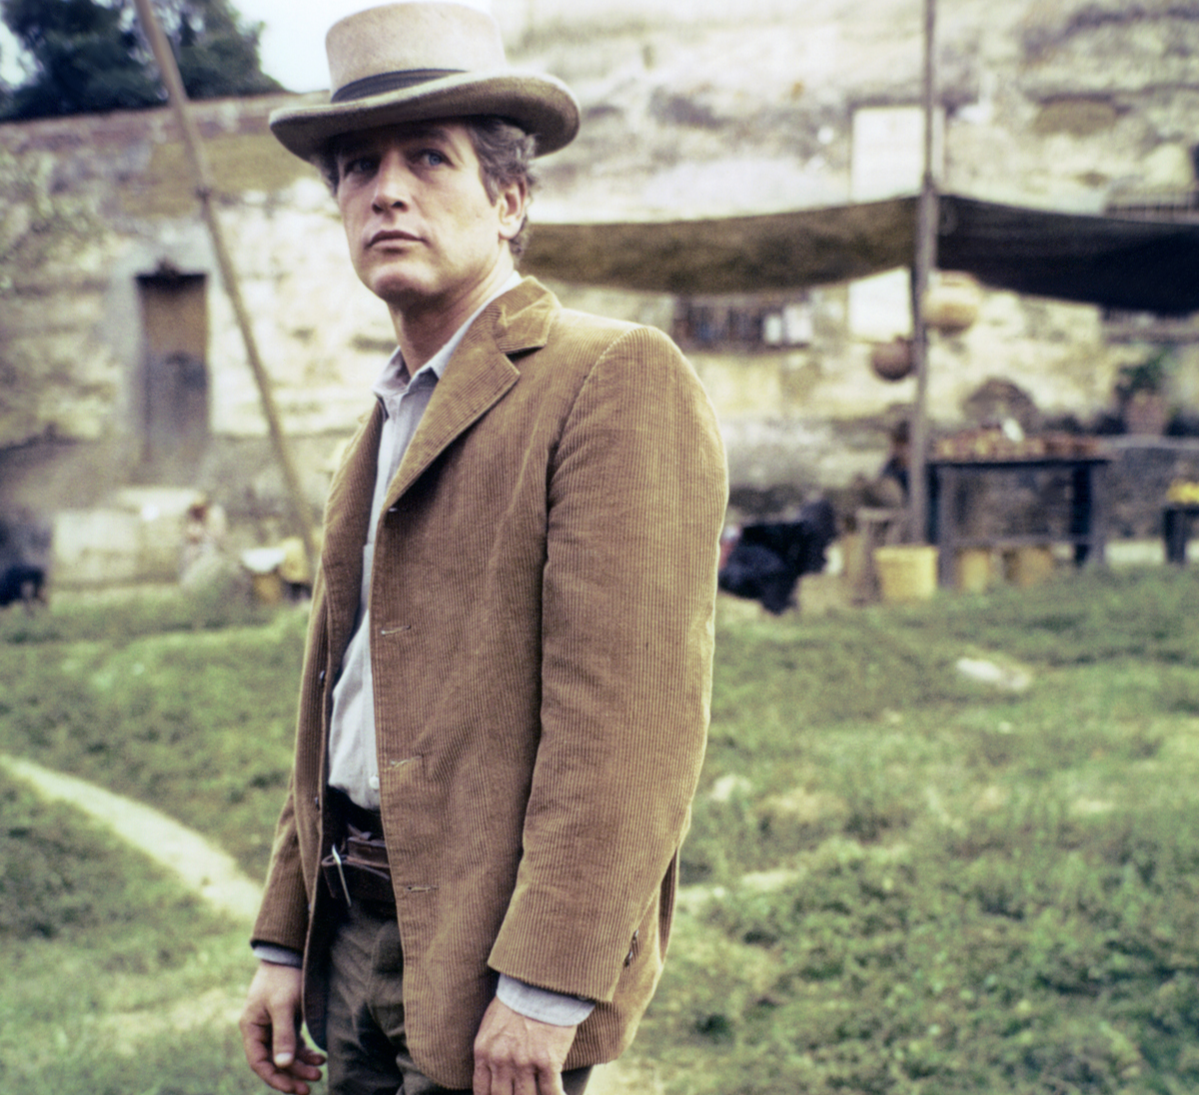 American actor Paul Newman on the set of Butch Cassidy and the Sundance Kid, directed by George Roy Hill.